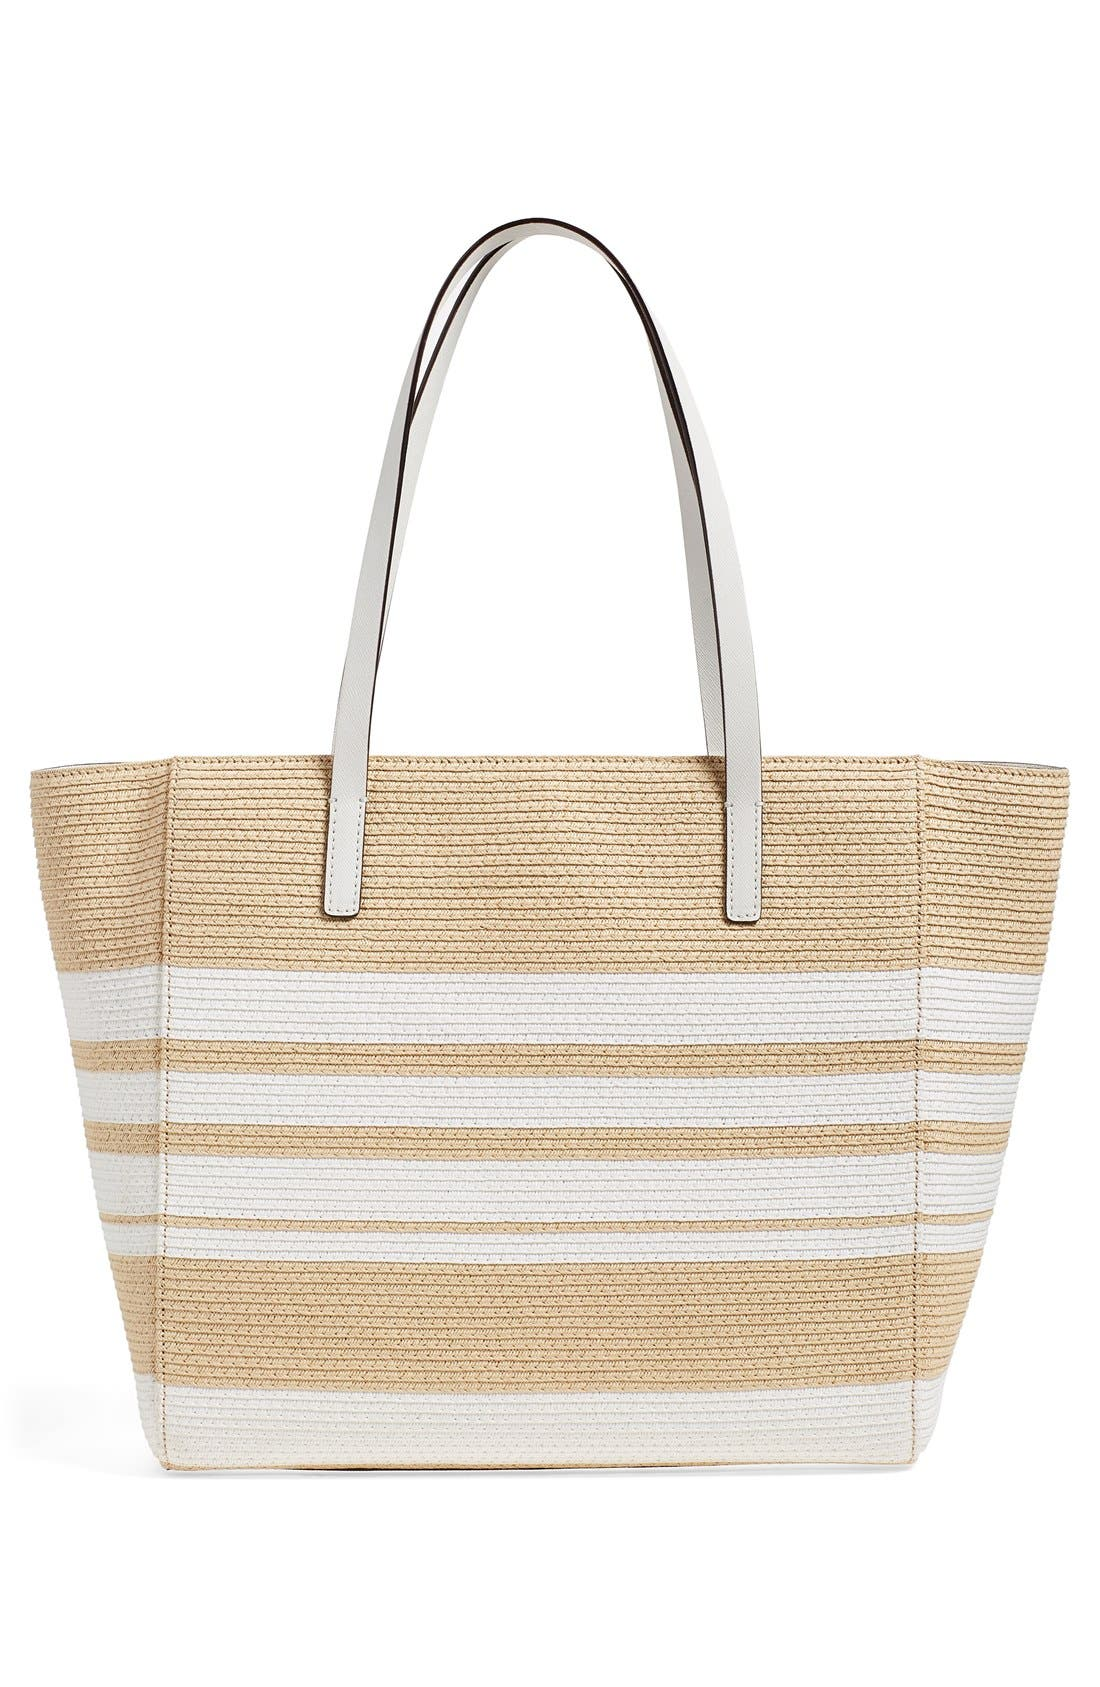 Alternate Image 3  - kate spade new york 'clement street - blair' woven straw tote